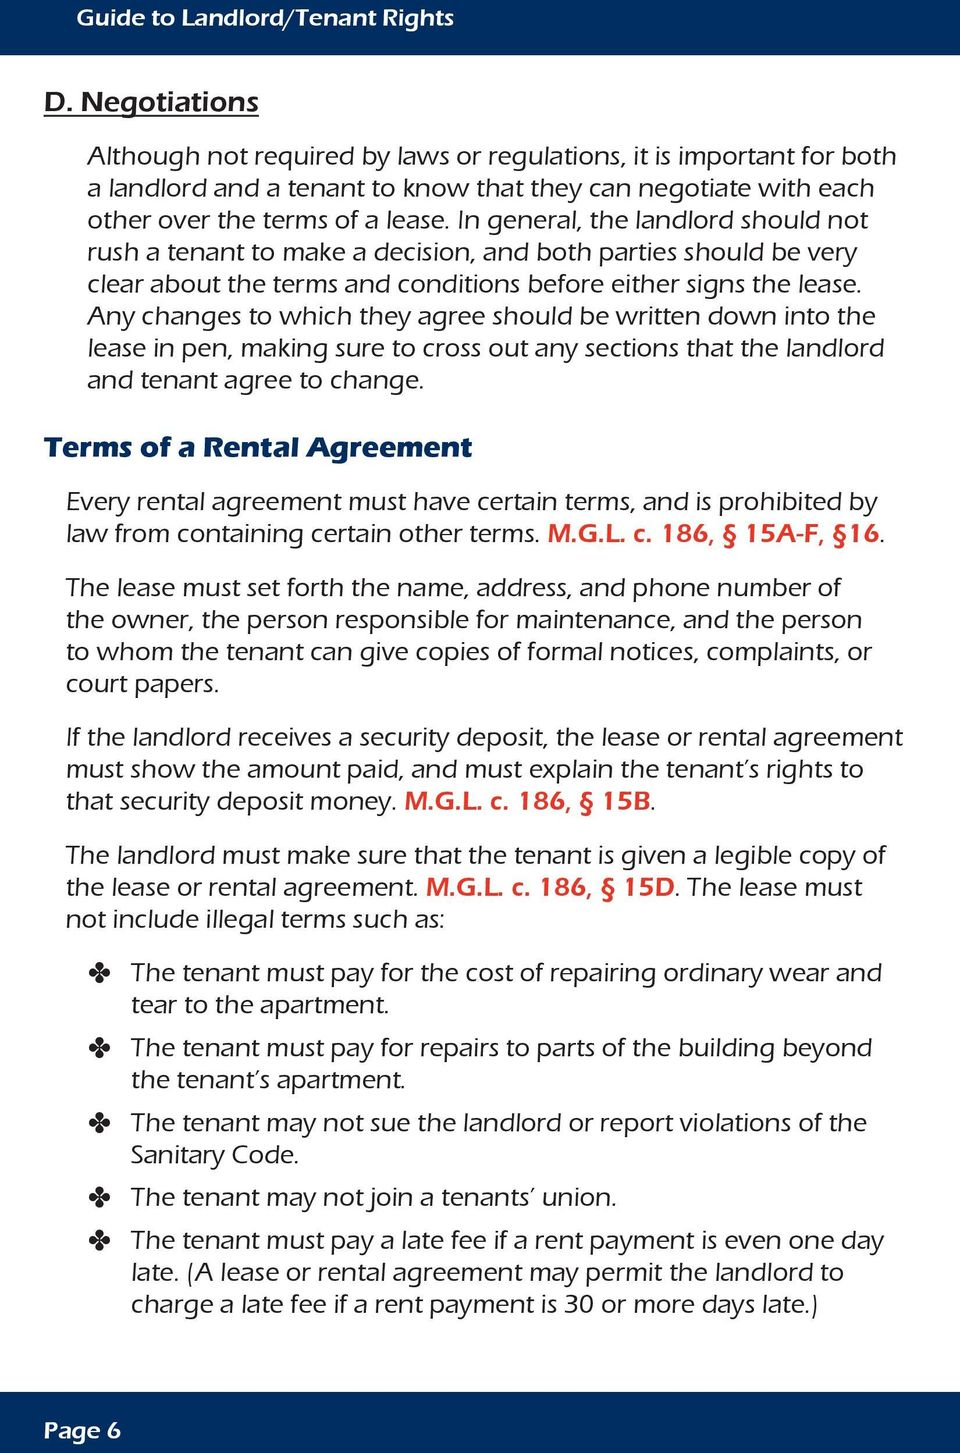 In general, the landlord should not rush a tenant to make a decision, and both parties should be very clear about the terms and conditions before either signs the lease.